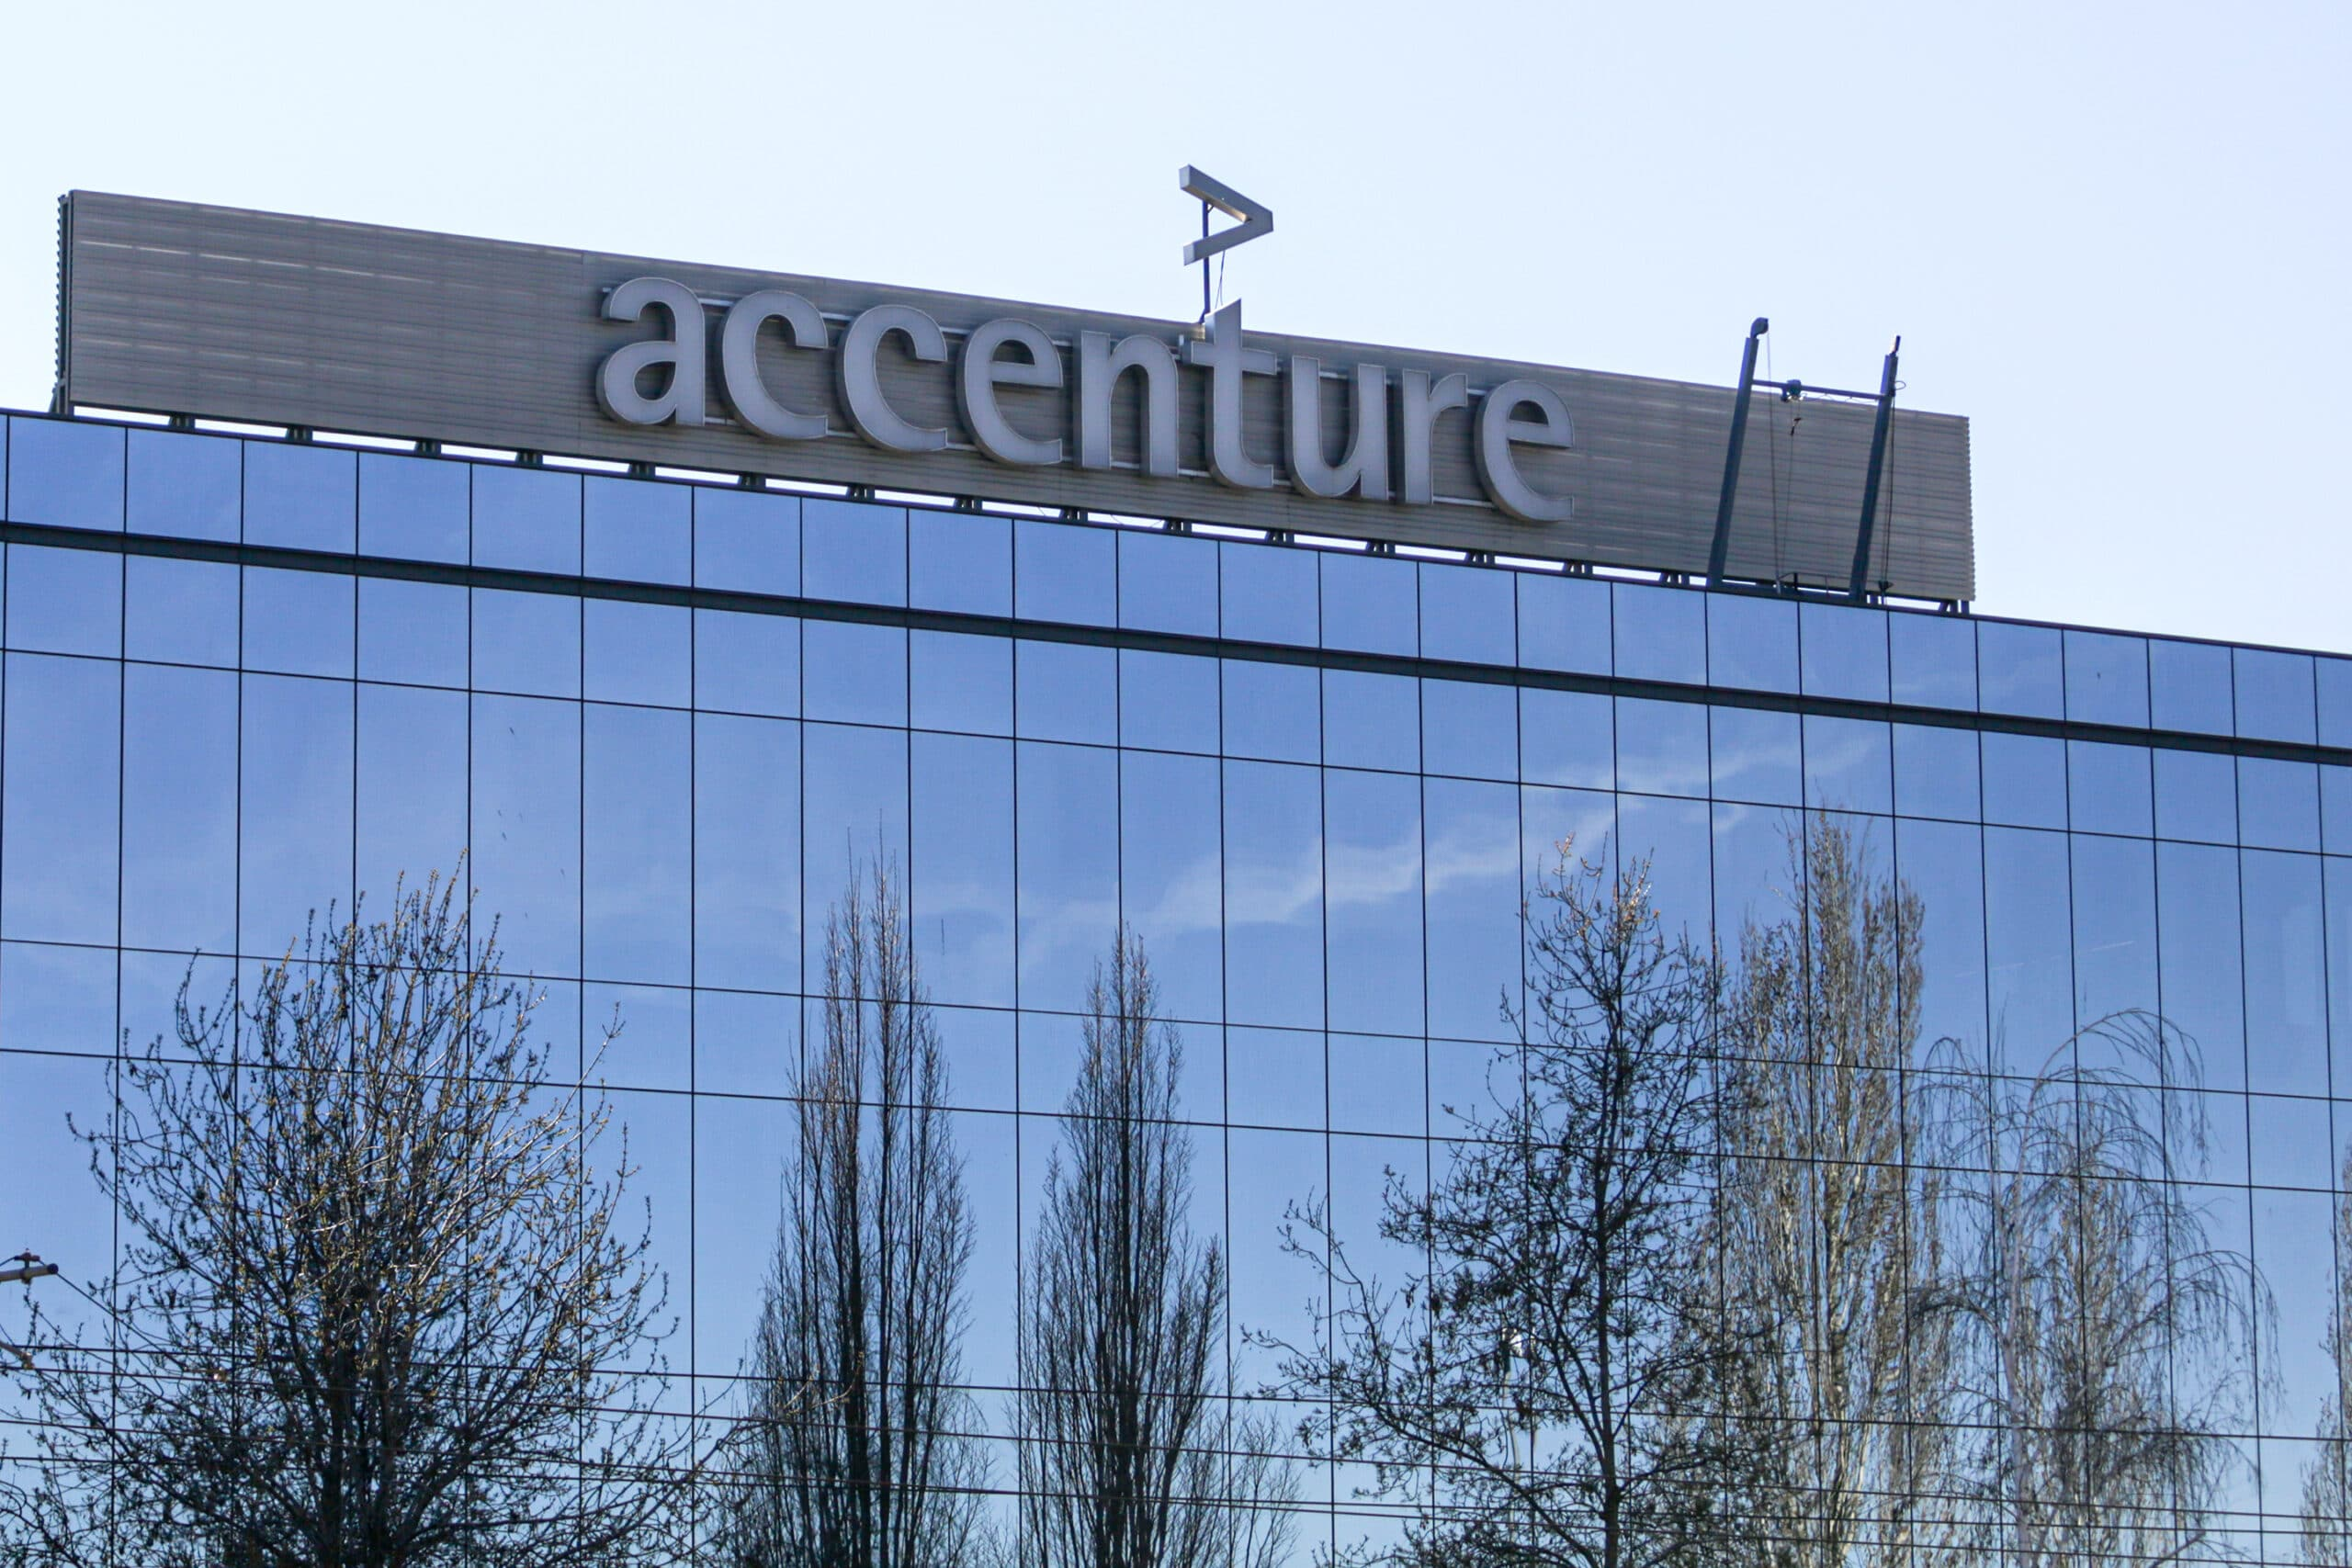 accenture-offcampus-recruitment-drive